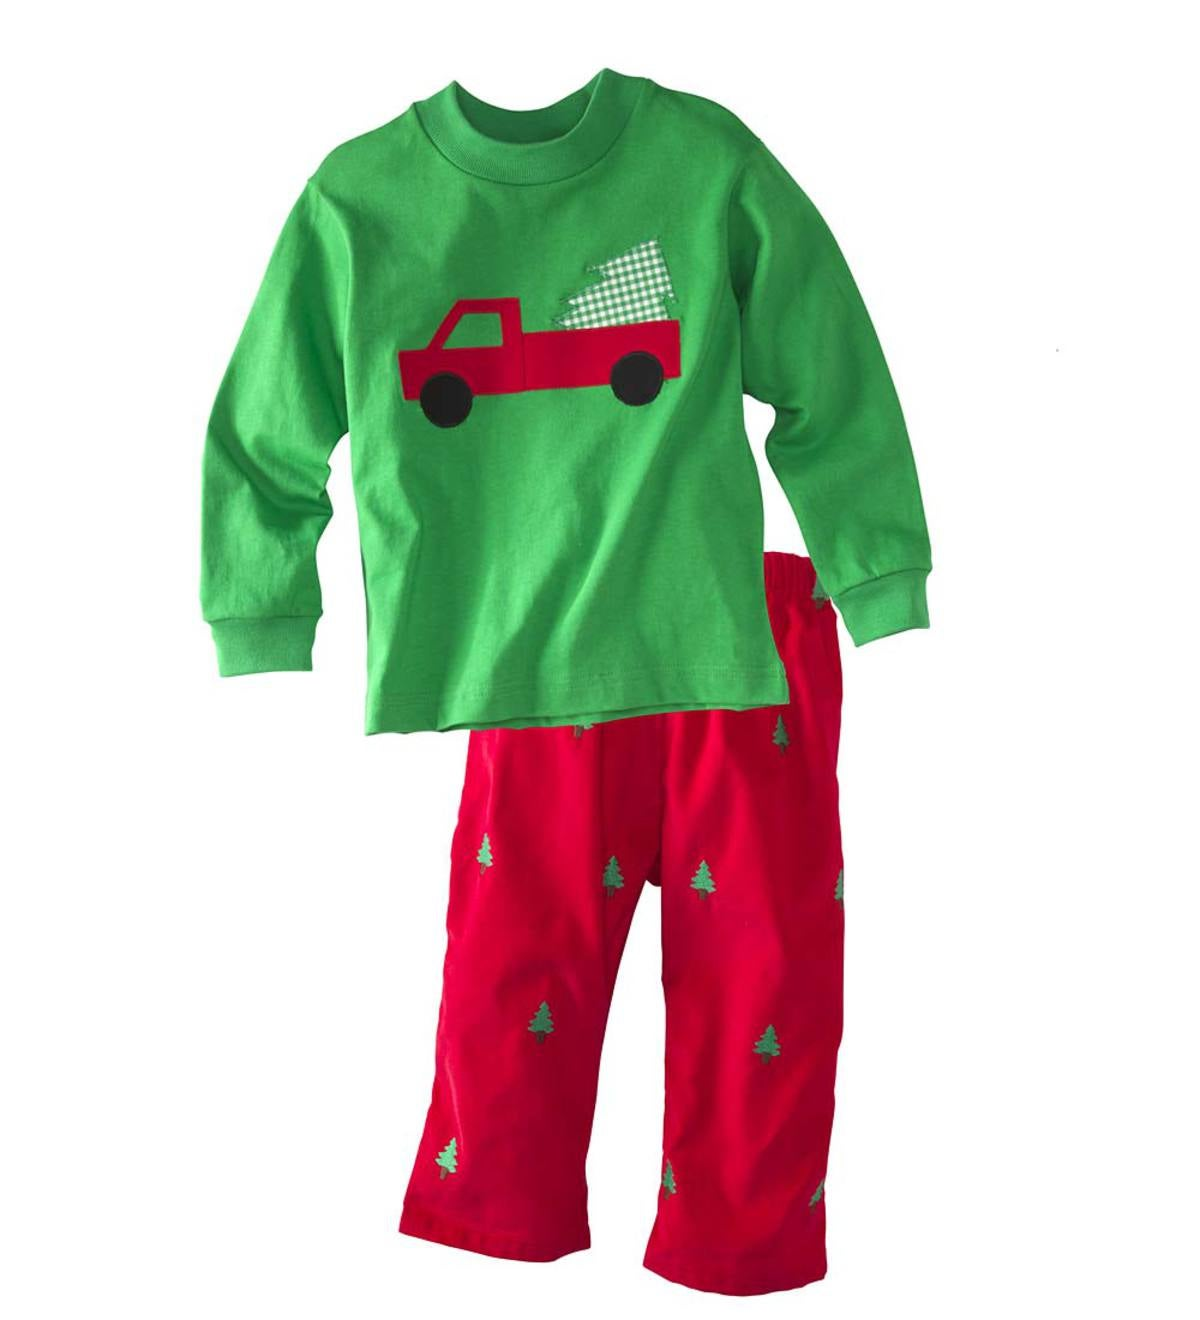 Applique Tree & Trucks Pants Set - Multi - 4T